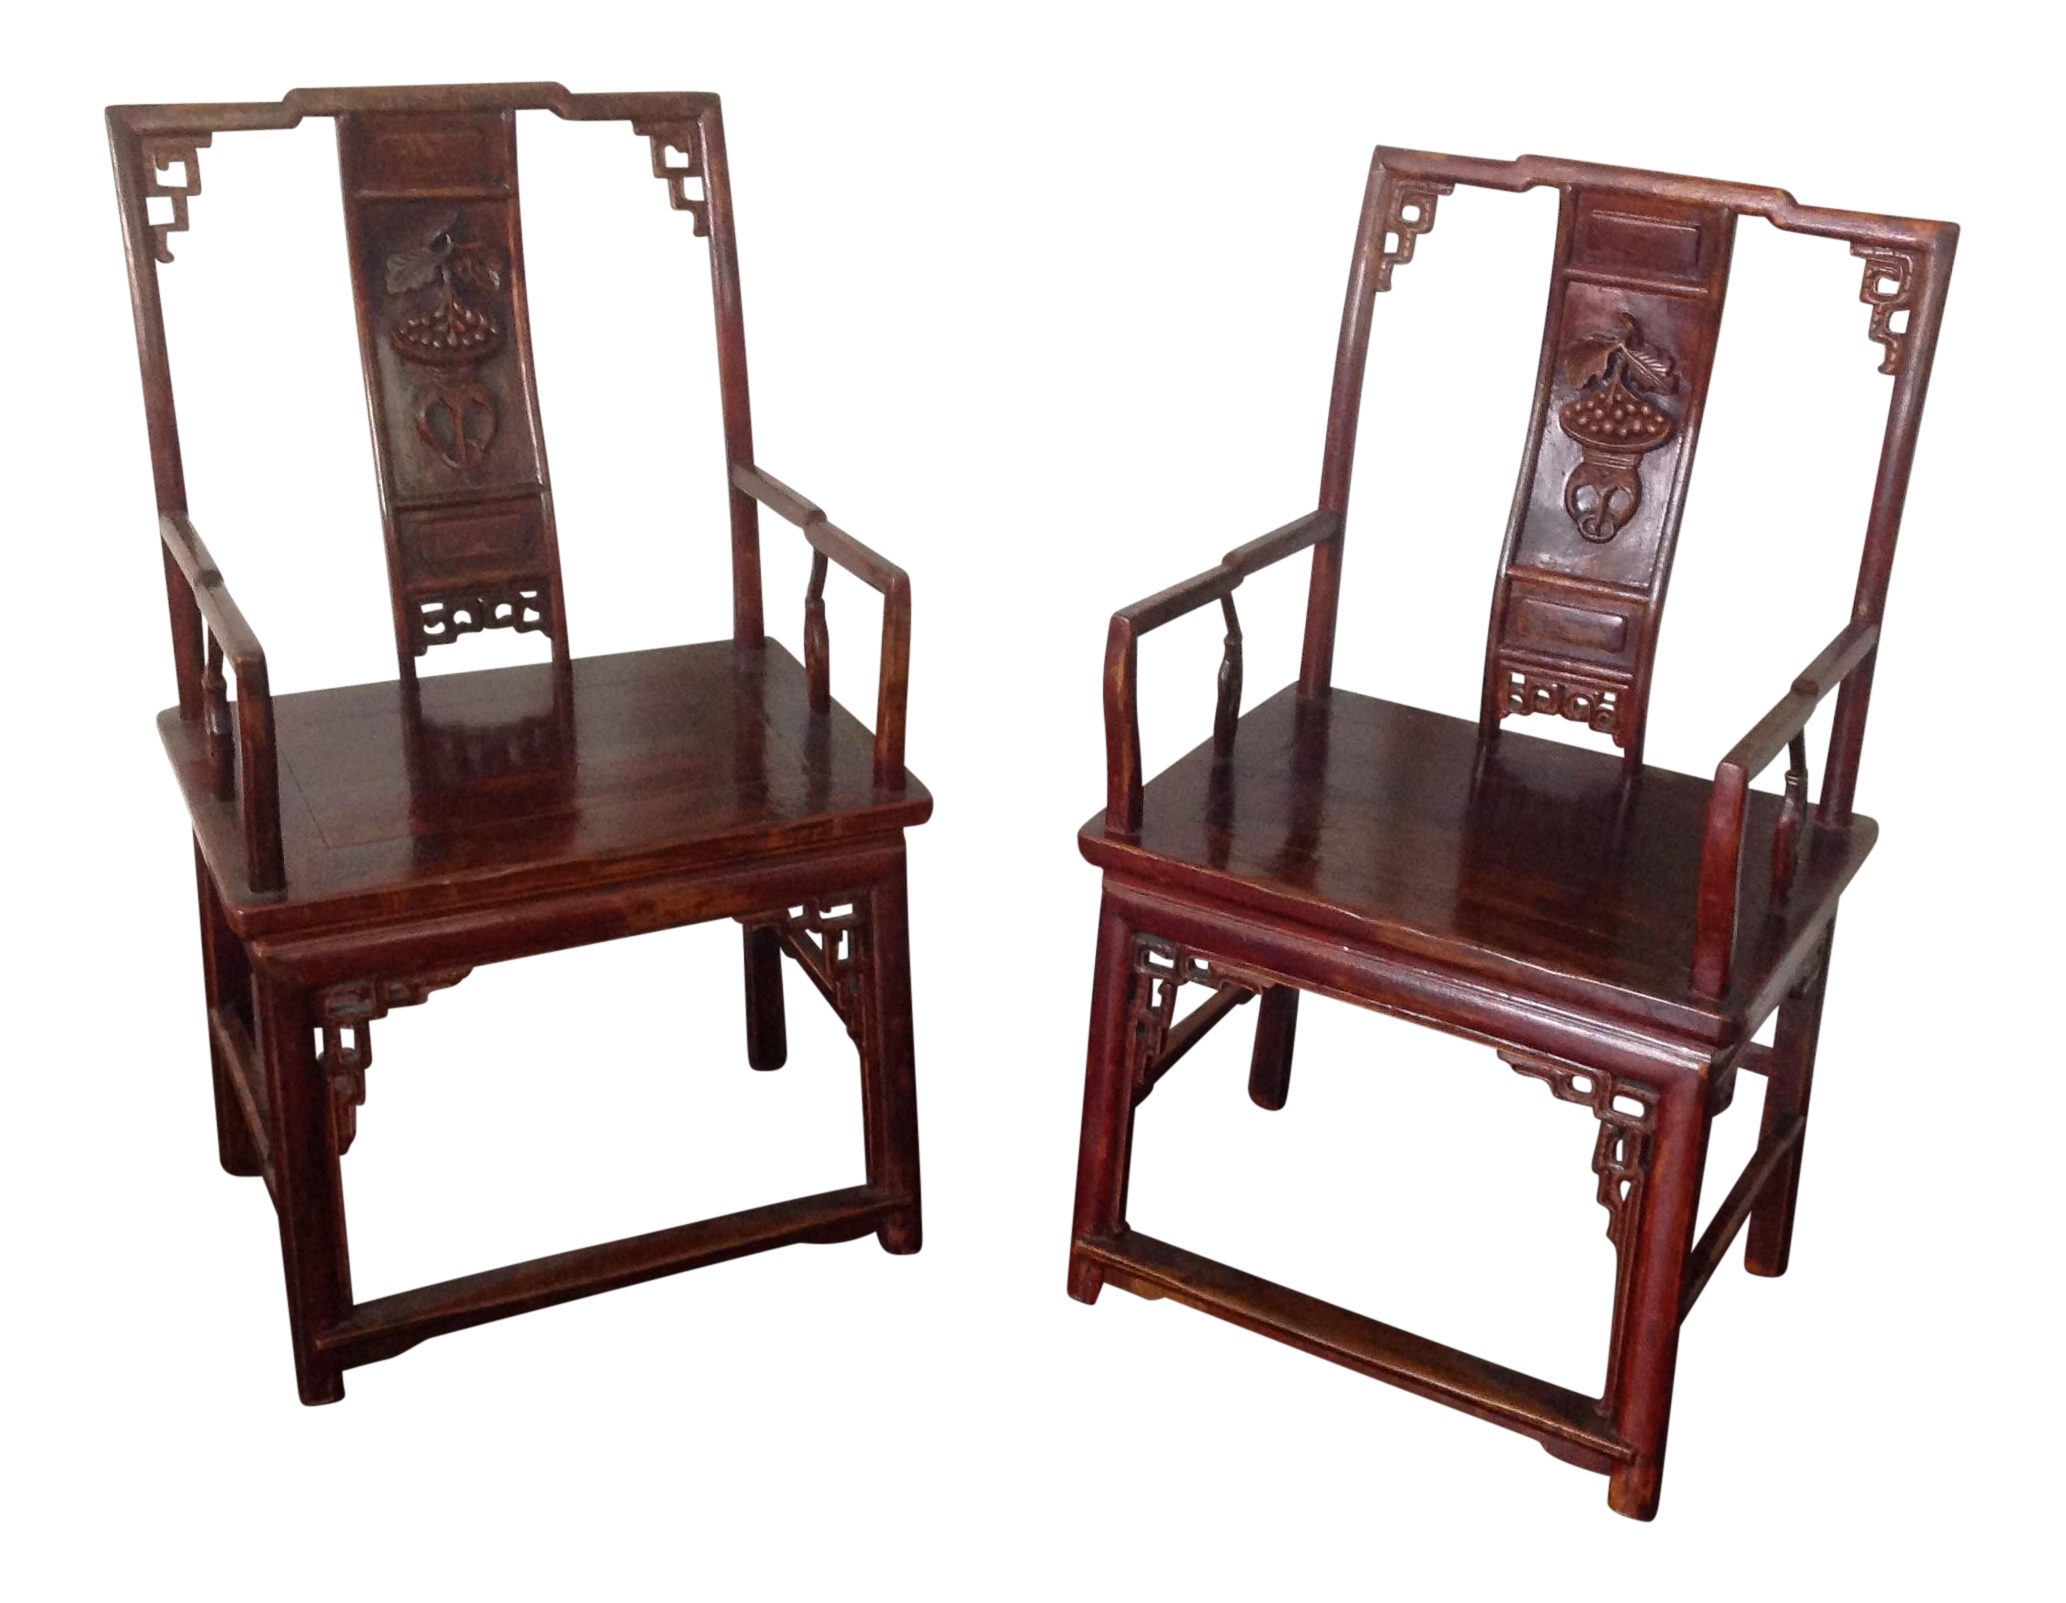 Merveilleux Ornate Asian Wooden Chairs   A Pair